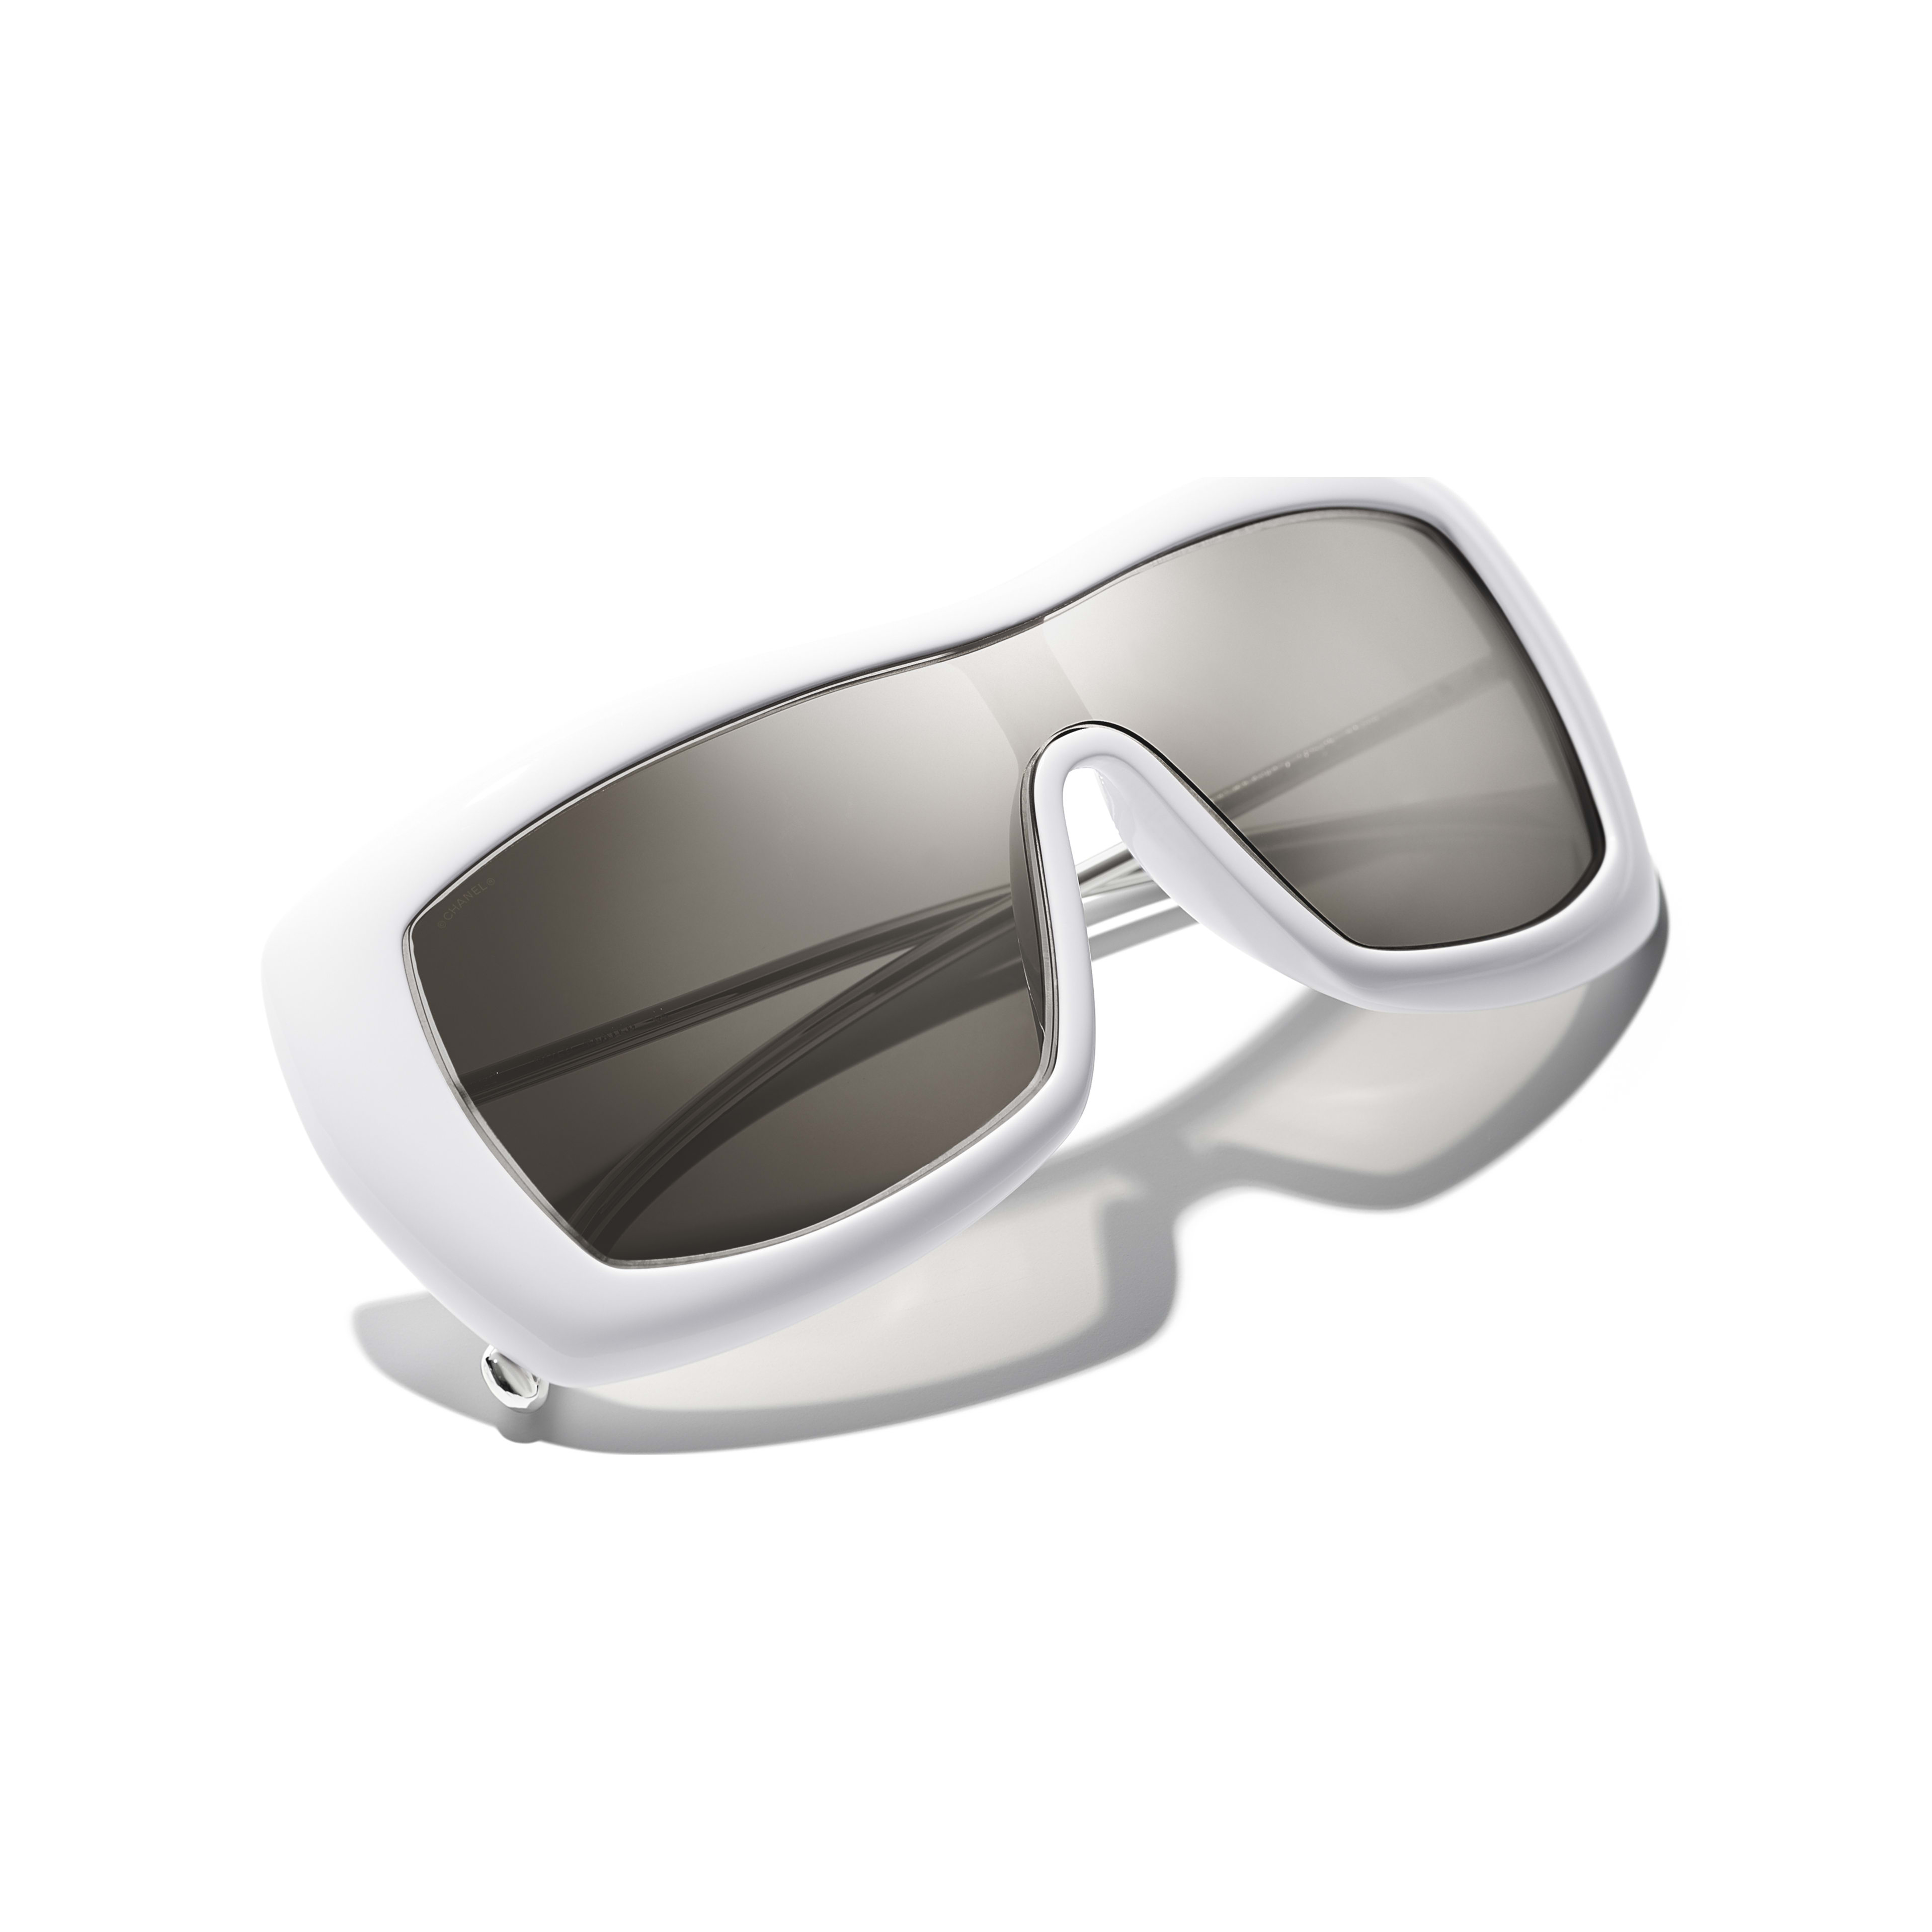 Shield Sunglasses - White - Acetate & Metal - Extra view - see full sized version